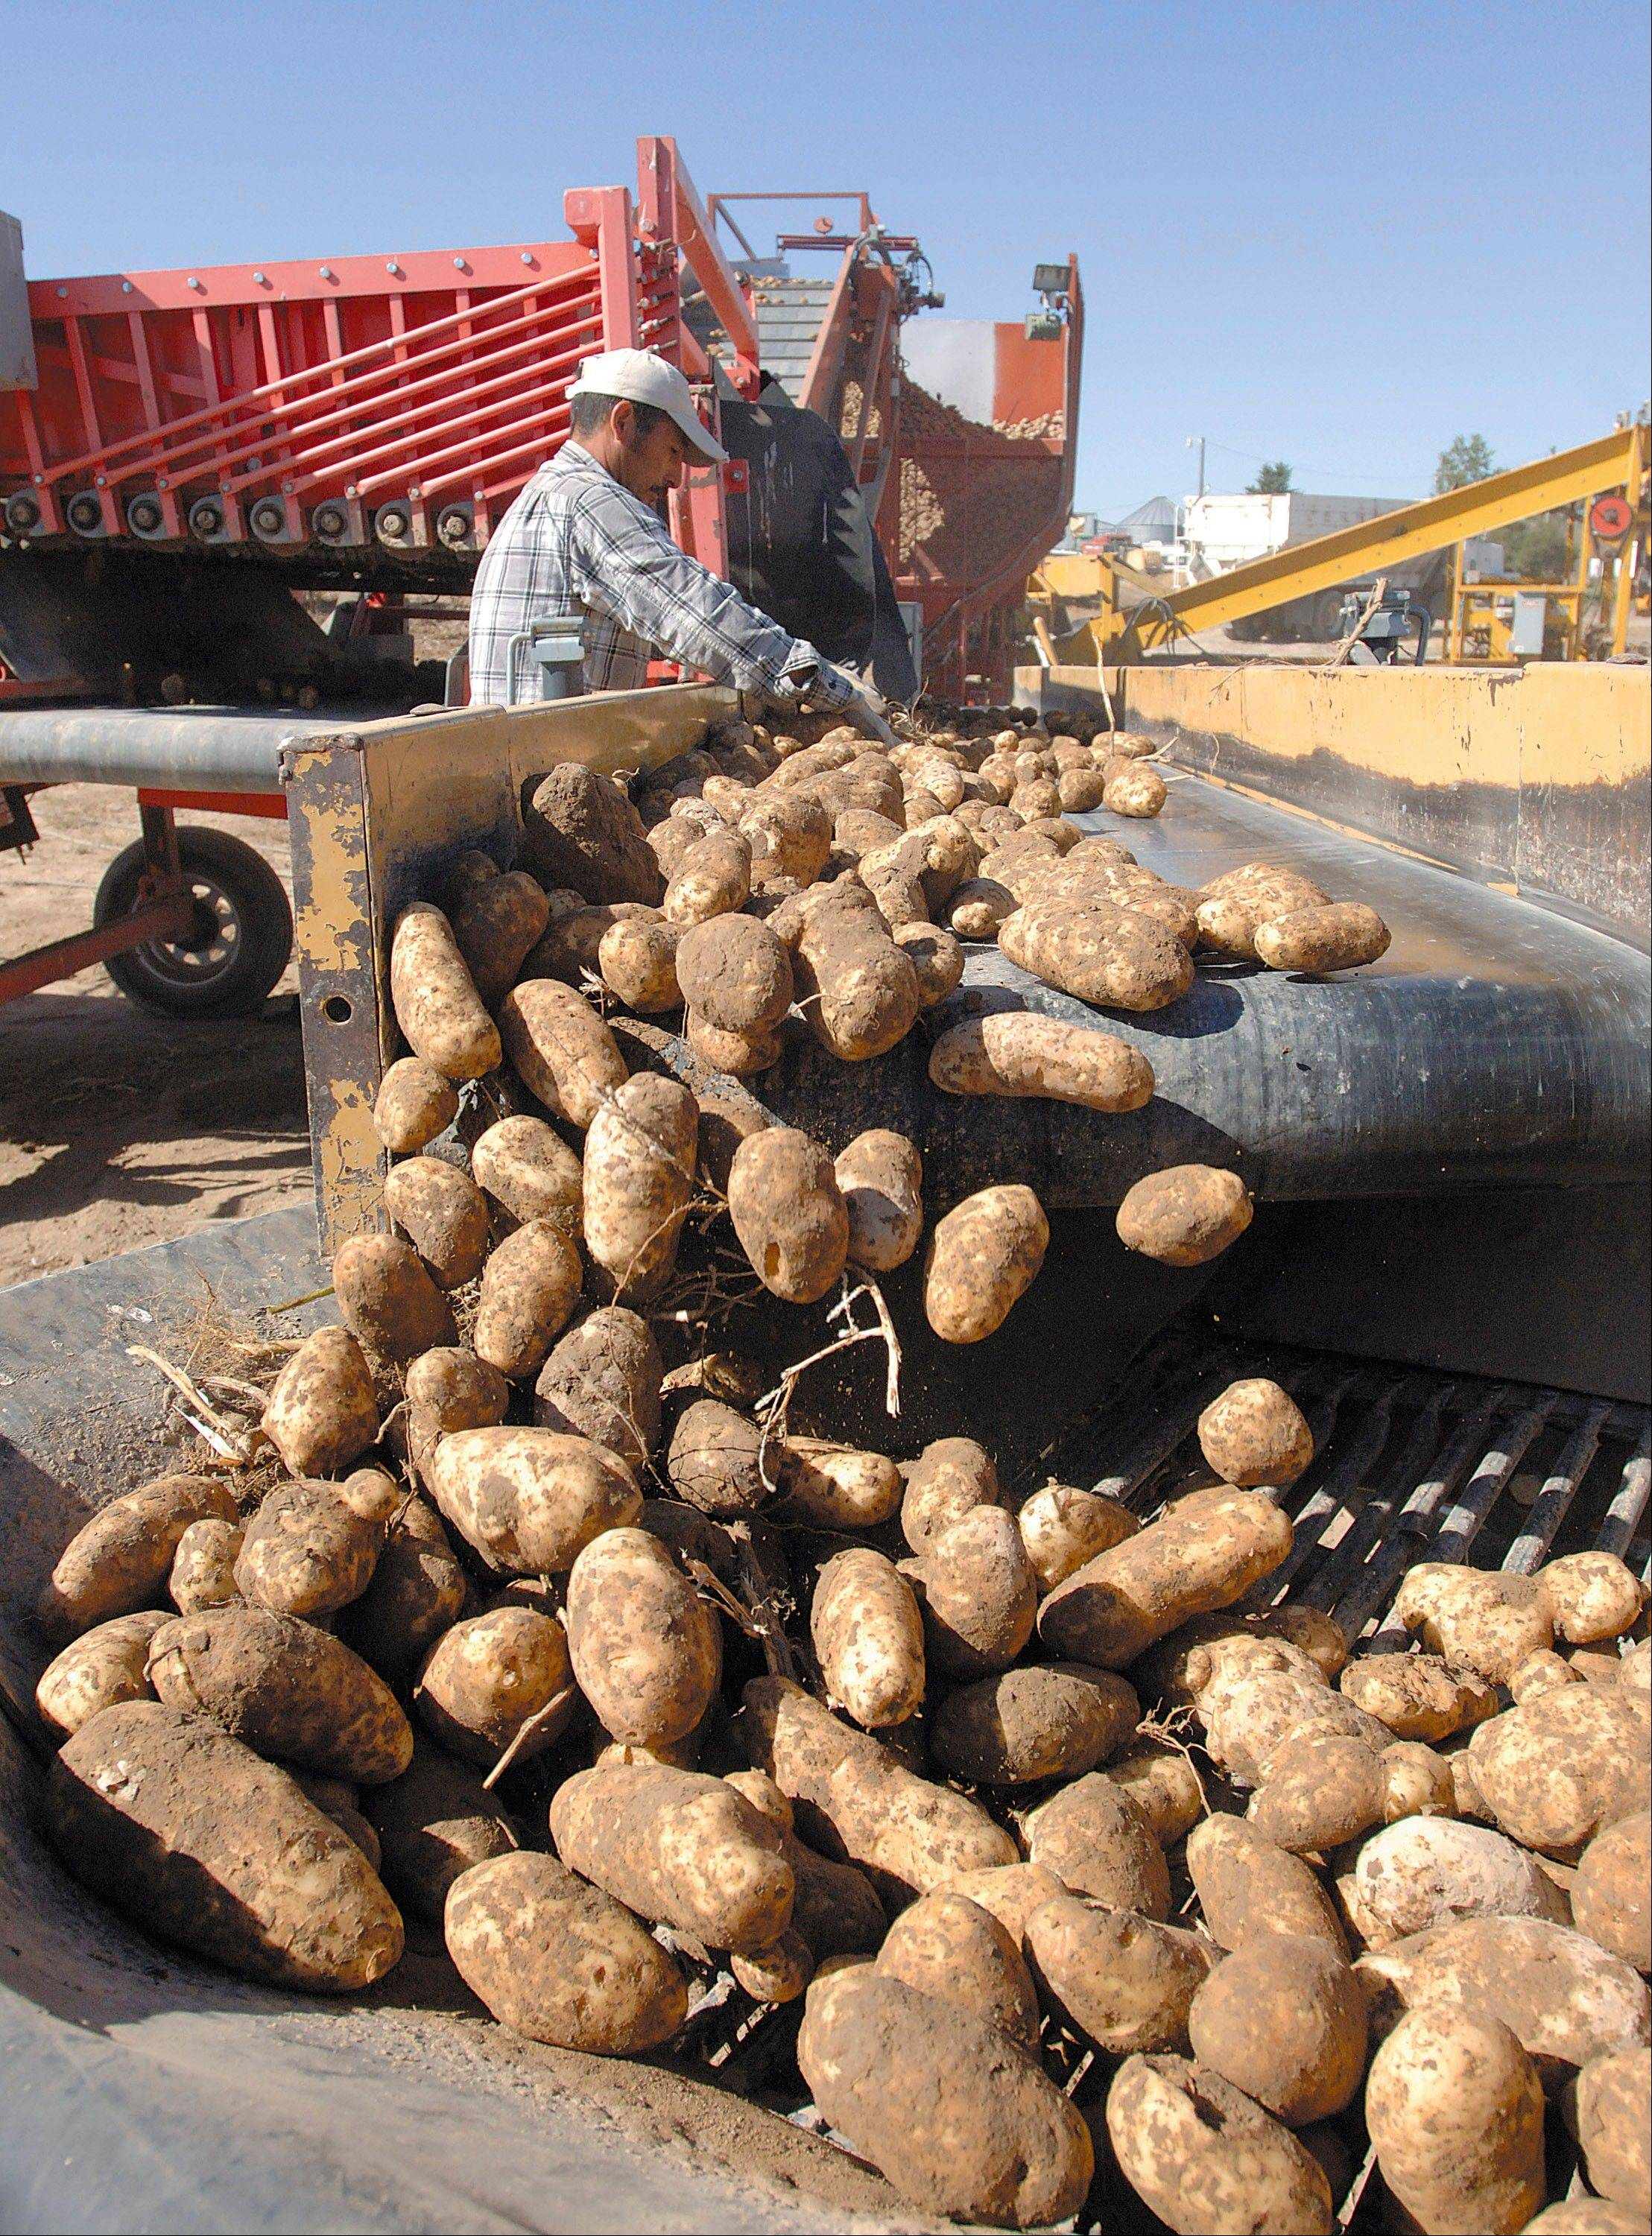 Potatoes are harvested at a farm near Idaho Falls, Idaho. A U.S. wholesale grocer says America's potato farmers are running an illegal price-fixing scheme.